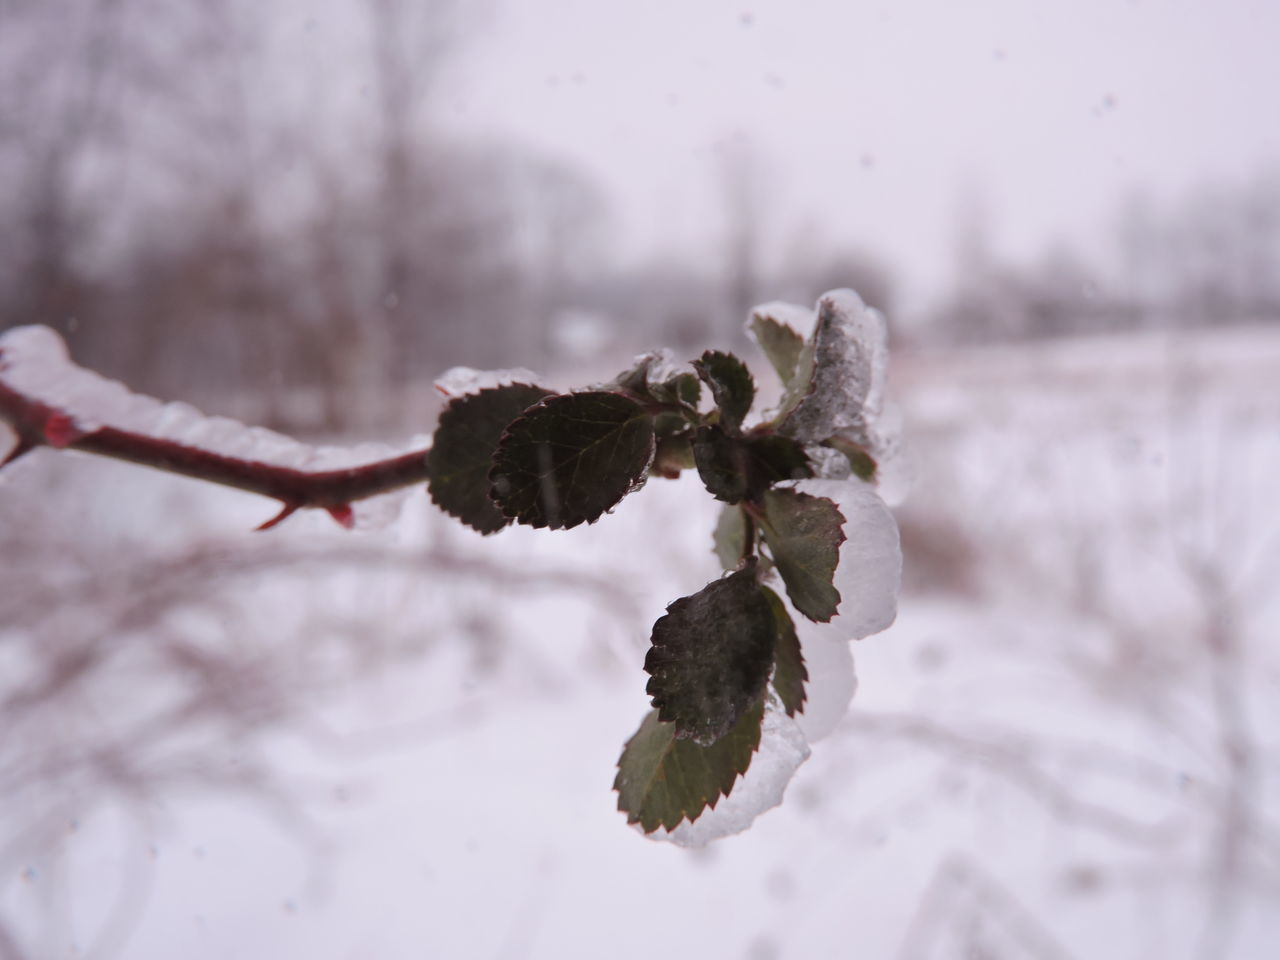 nature, winter, beauty in nature, plant, cold temperature, fragility, focus on foreground, outdoors, close-up, flower, day, growth, snow, no people, freshness, flower head